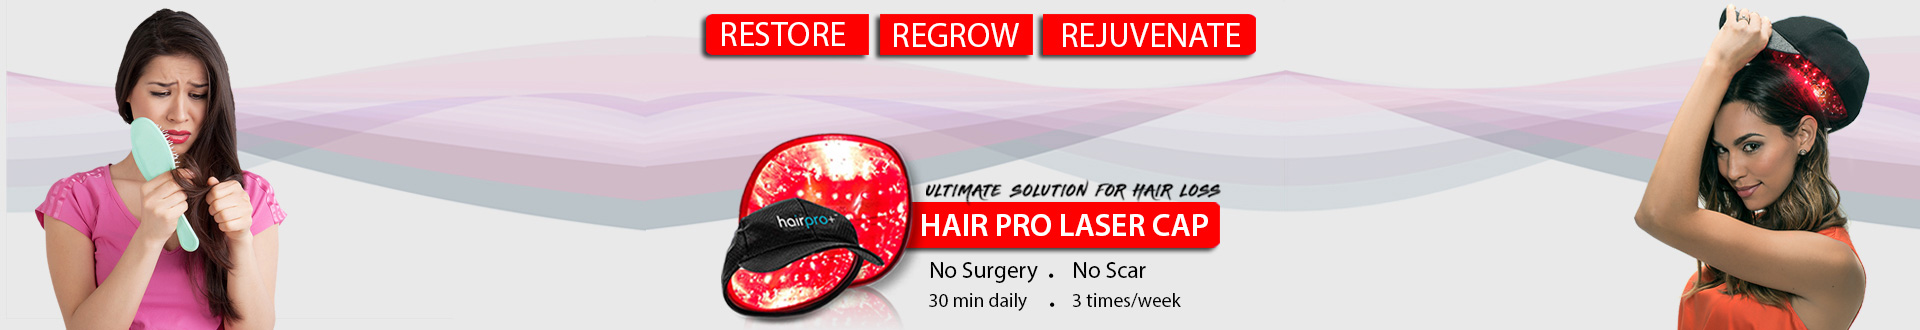 Buy Laser Cap for Hair Growth